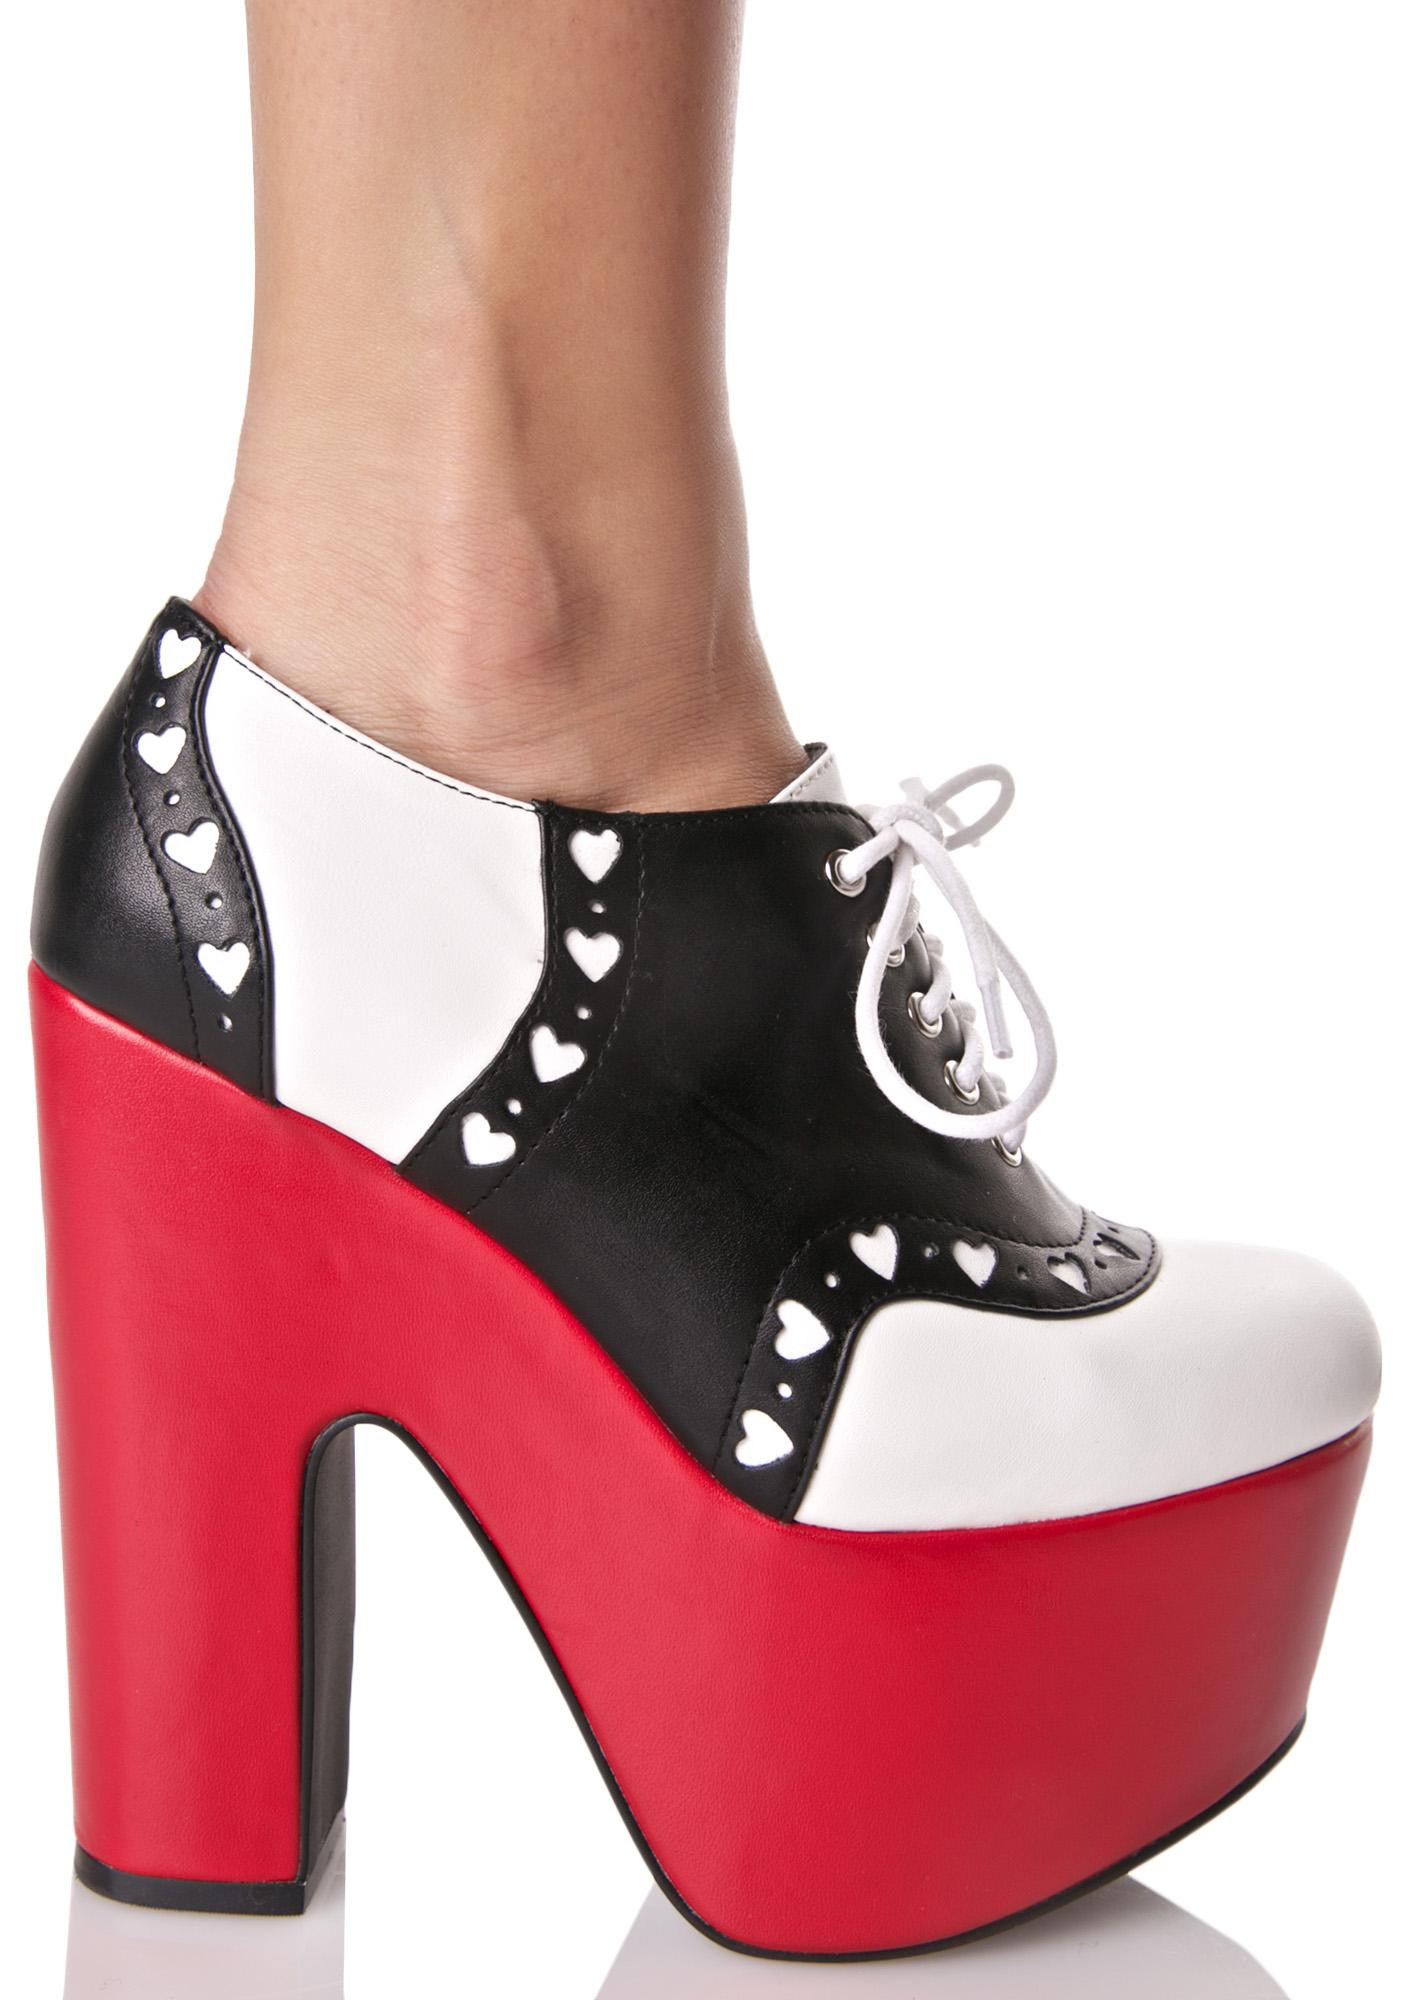 Sugar Thrillz Bettysue Platforms